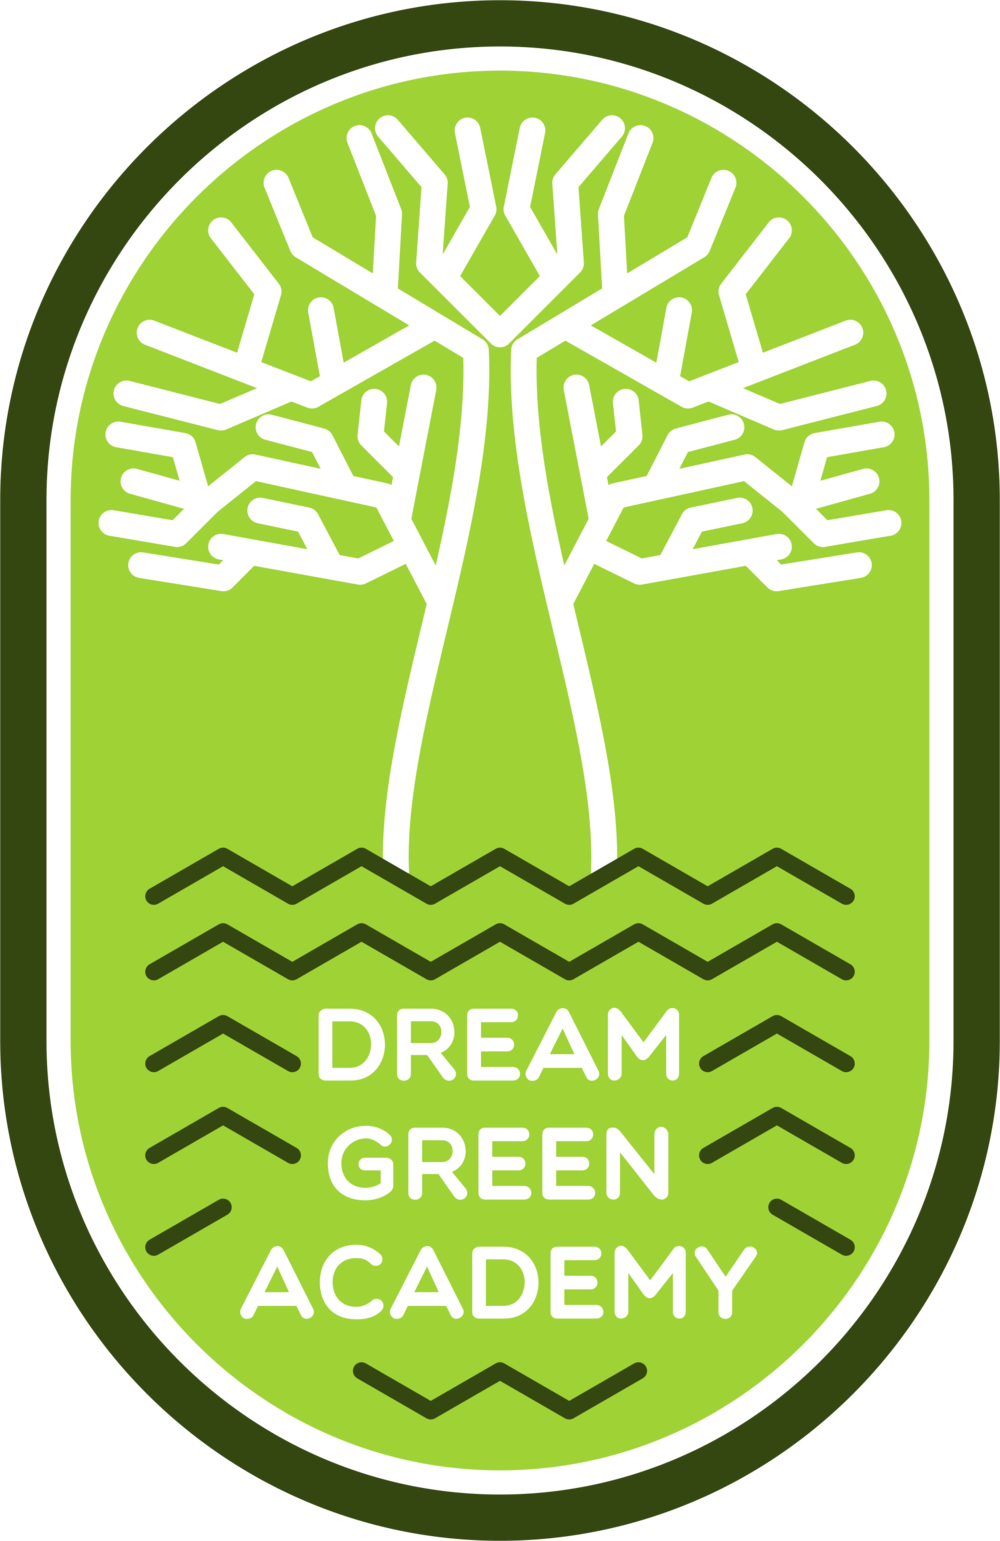 DREAM GREEN ACADEMY - LOGO.png